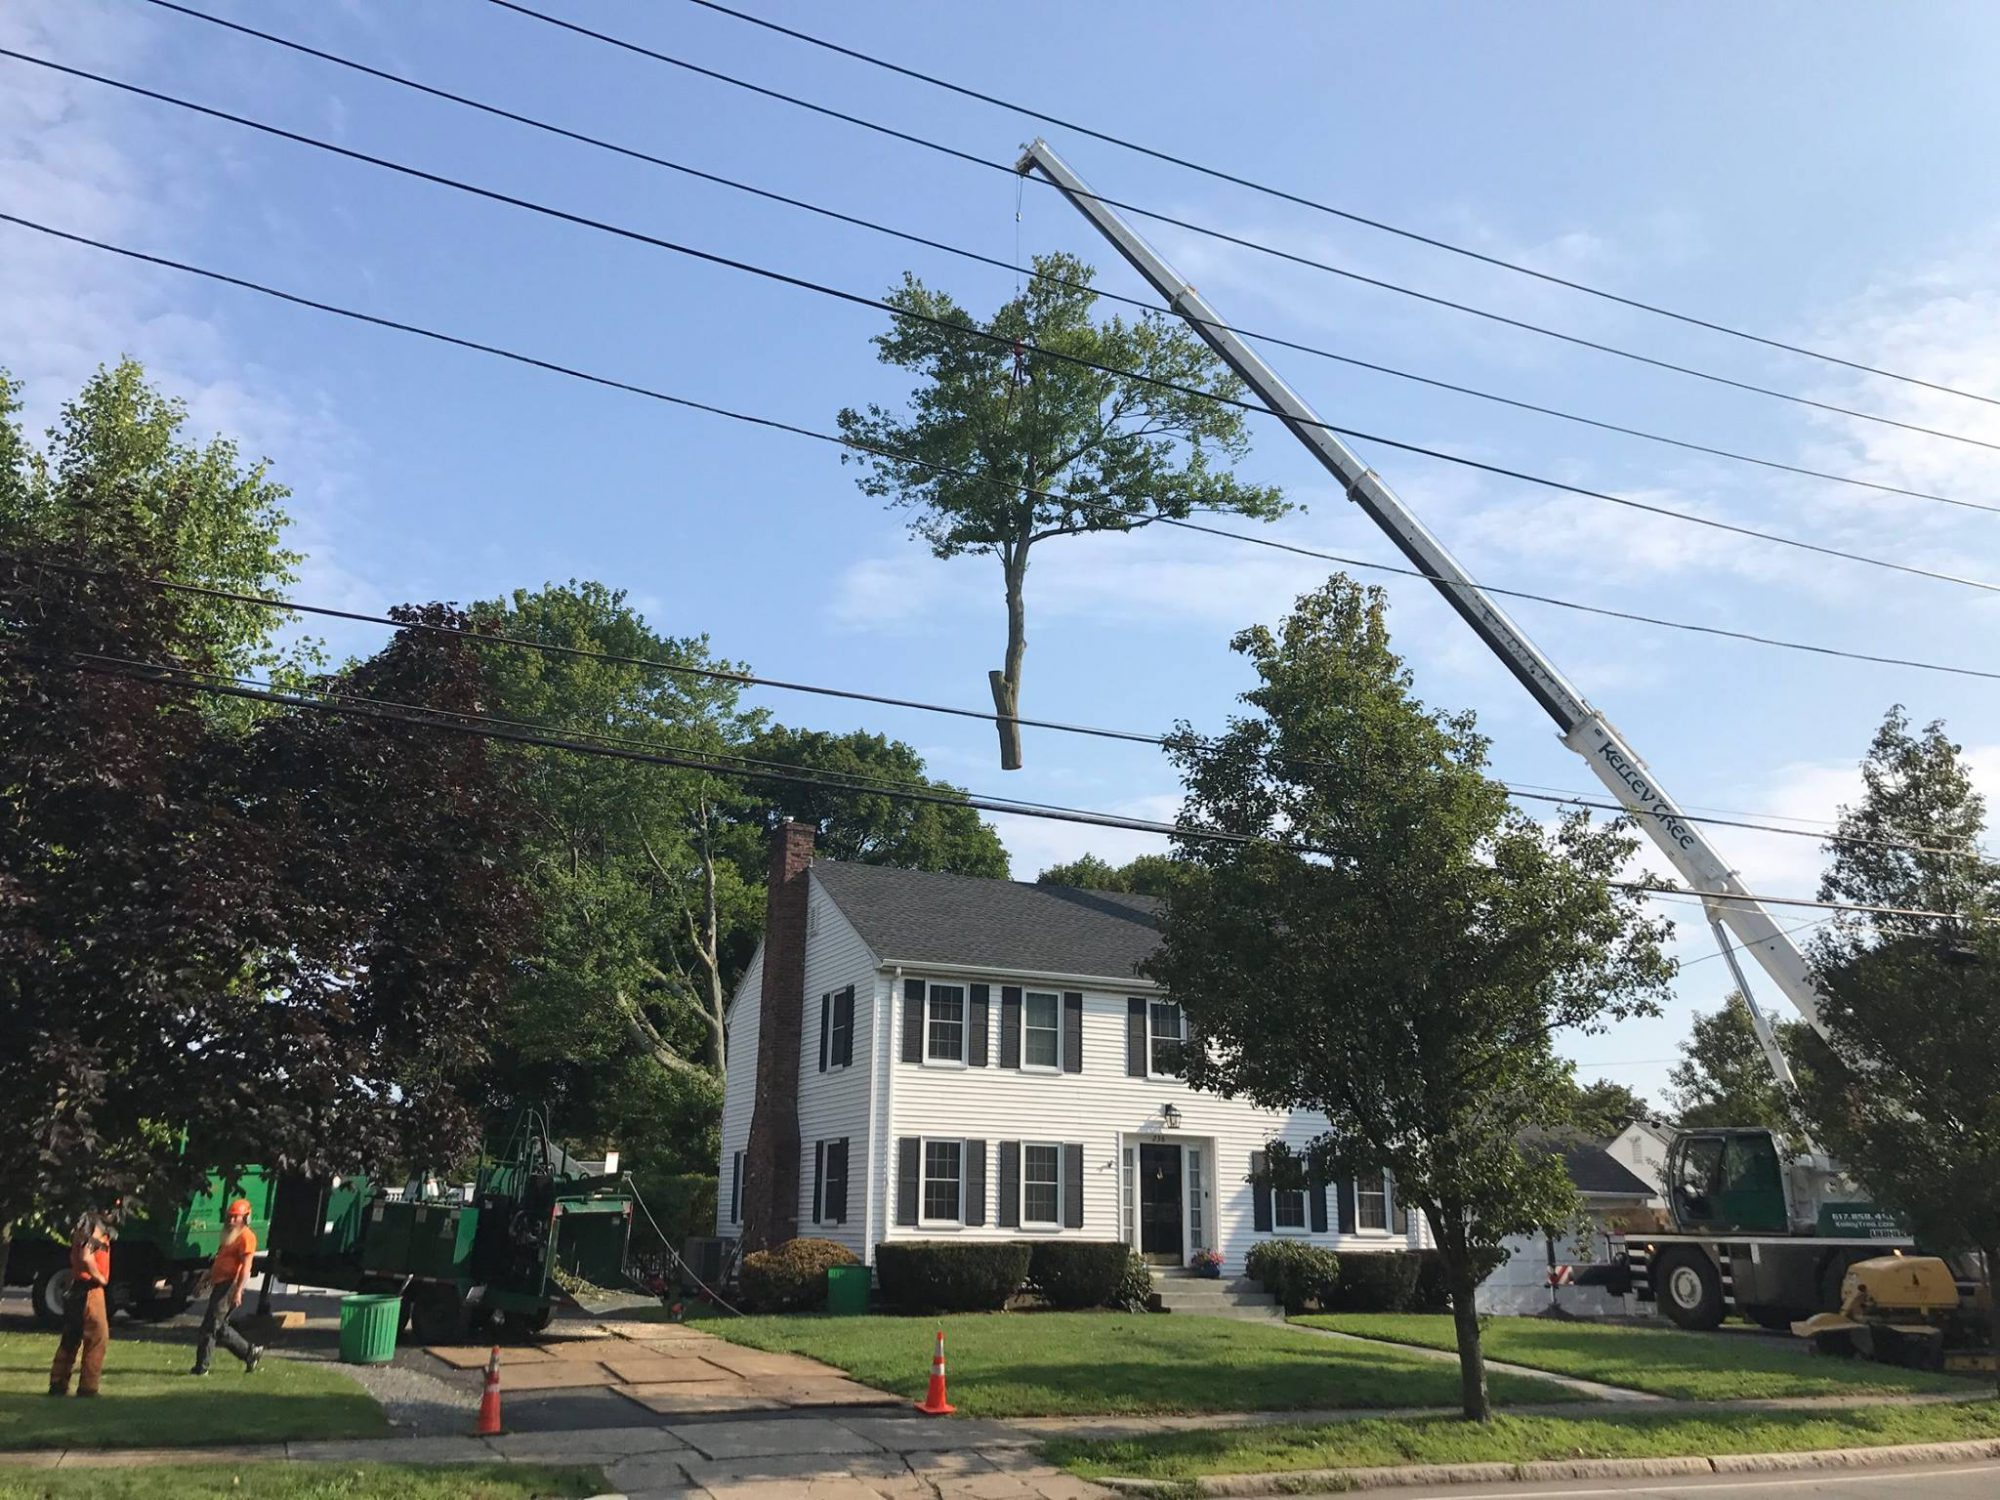 tree branch suspended in air as service equipment removes tree from property